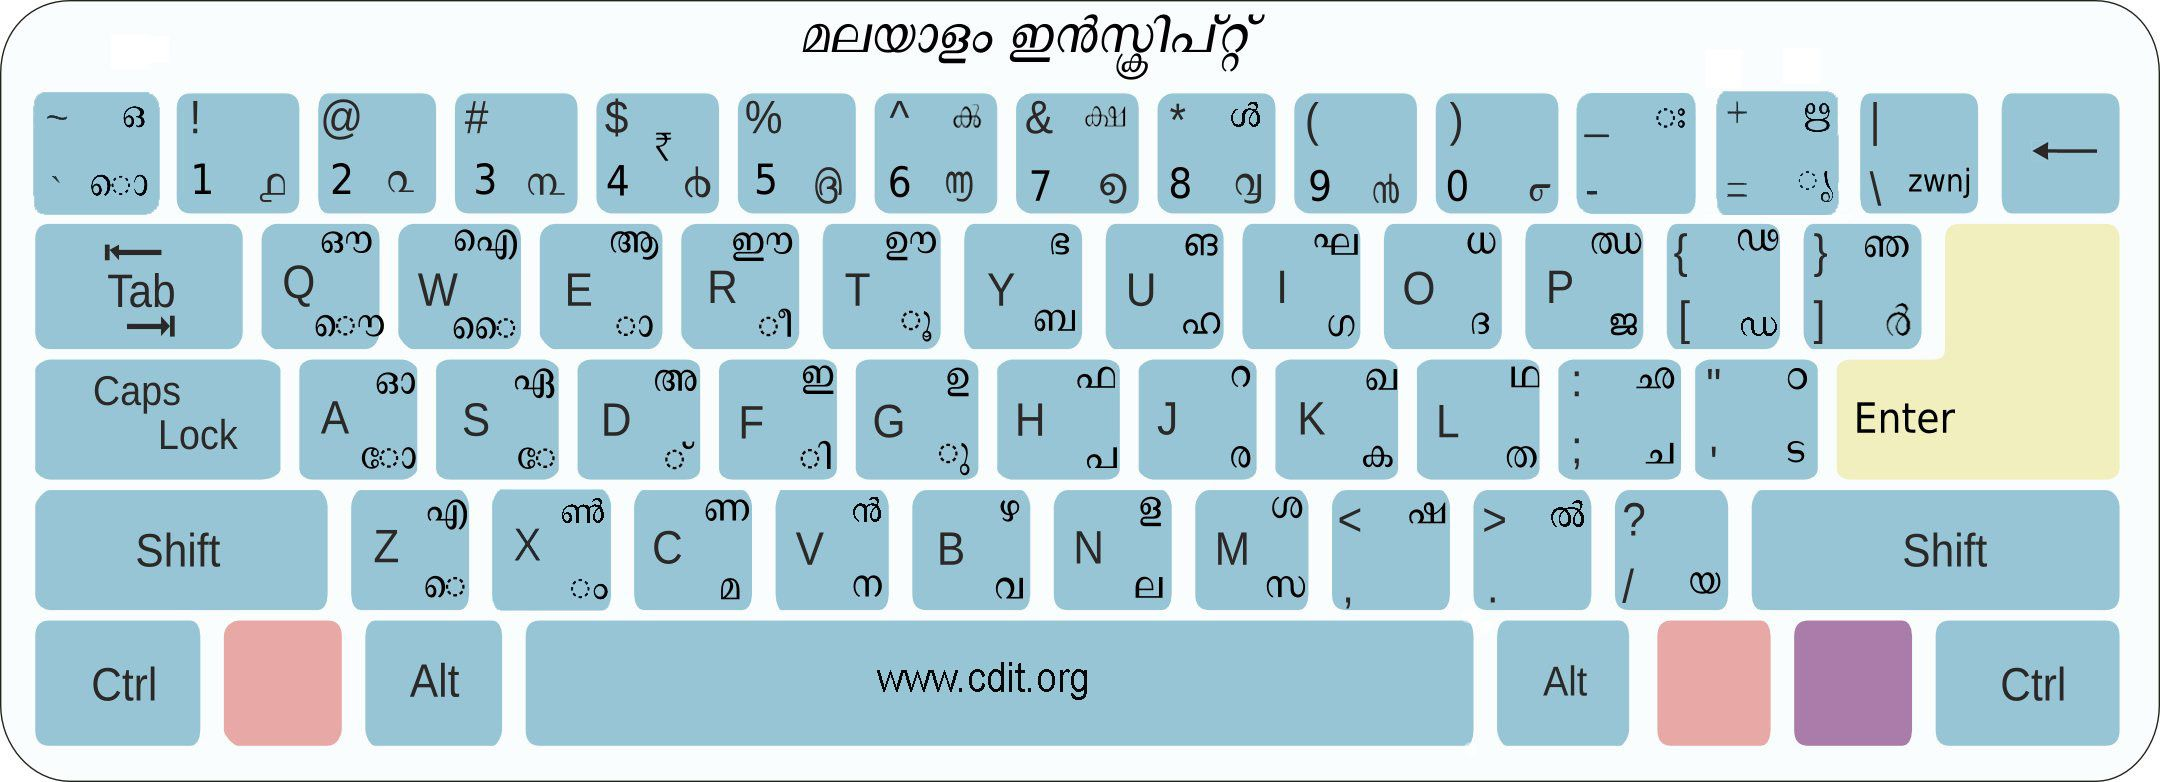 english malayalam typing keyboard free download